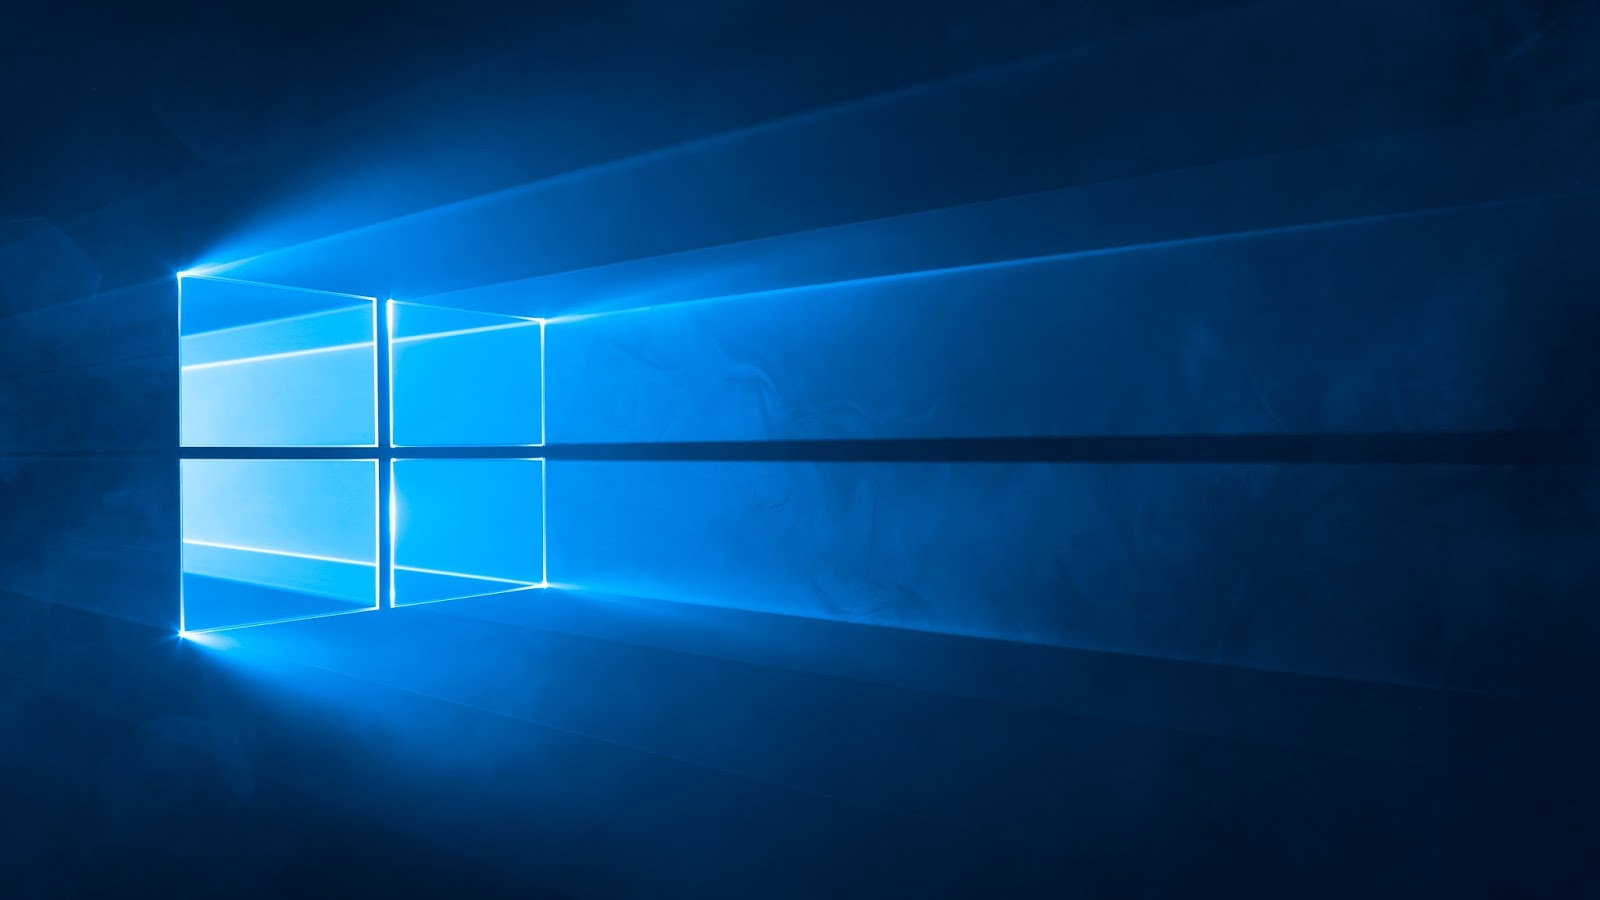 Free Download Windows 10 Download Hd Wallpapers 1600x900